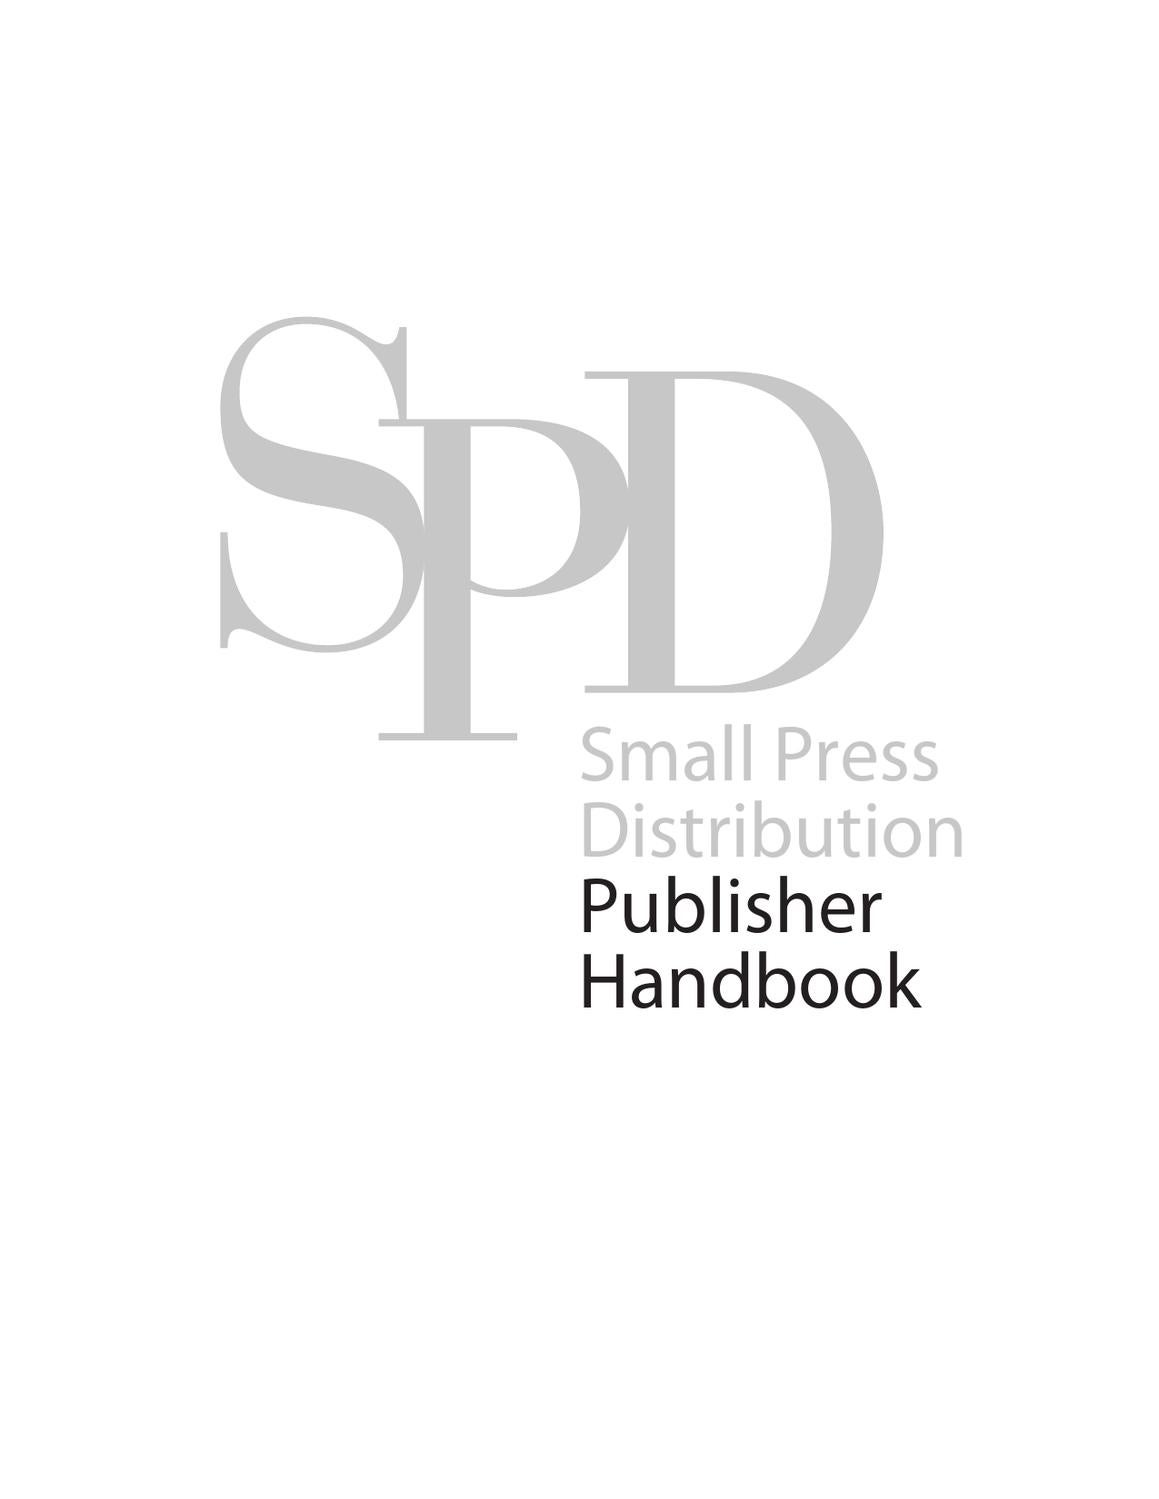 SPD Publisher Handbook Sep. 2012 by Small Press